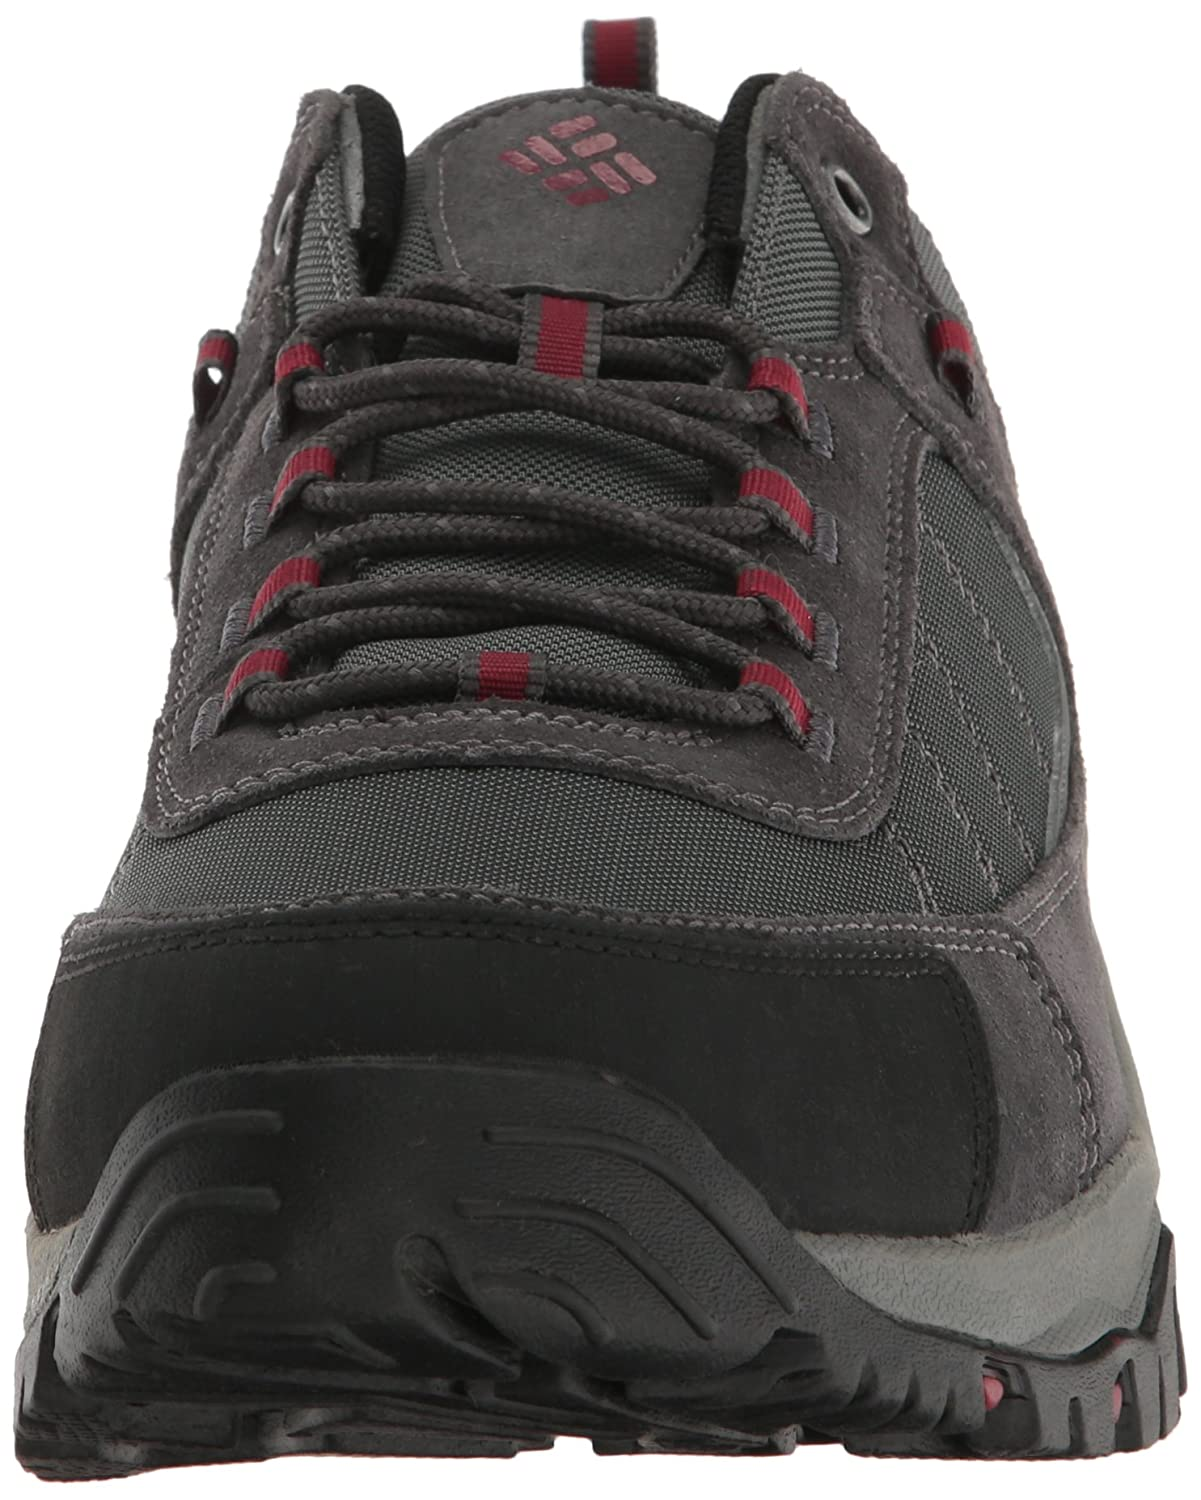 Columbia Men's Granite Ridge Hiking schuhe, schuhe, schuhe, Dark grau, rot Element, 11 D US 794a4d